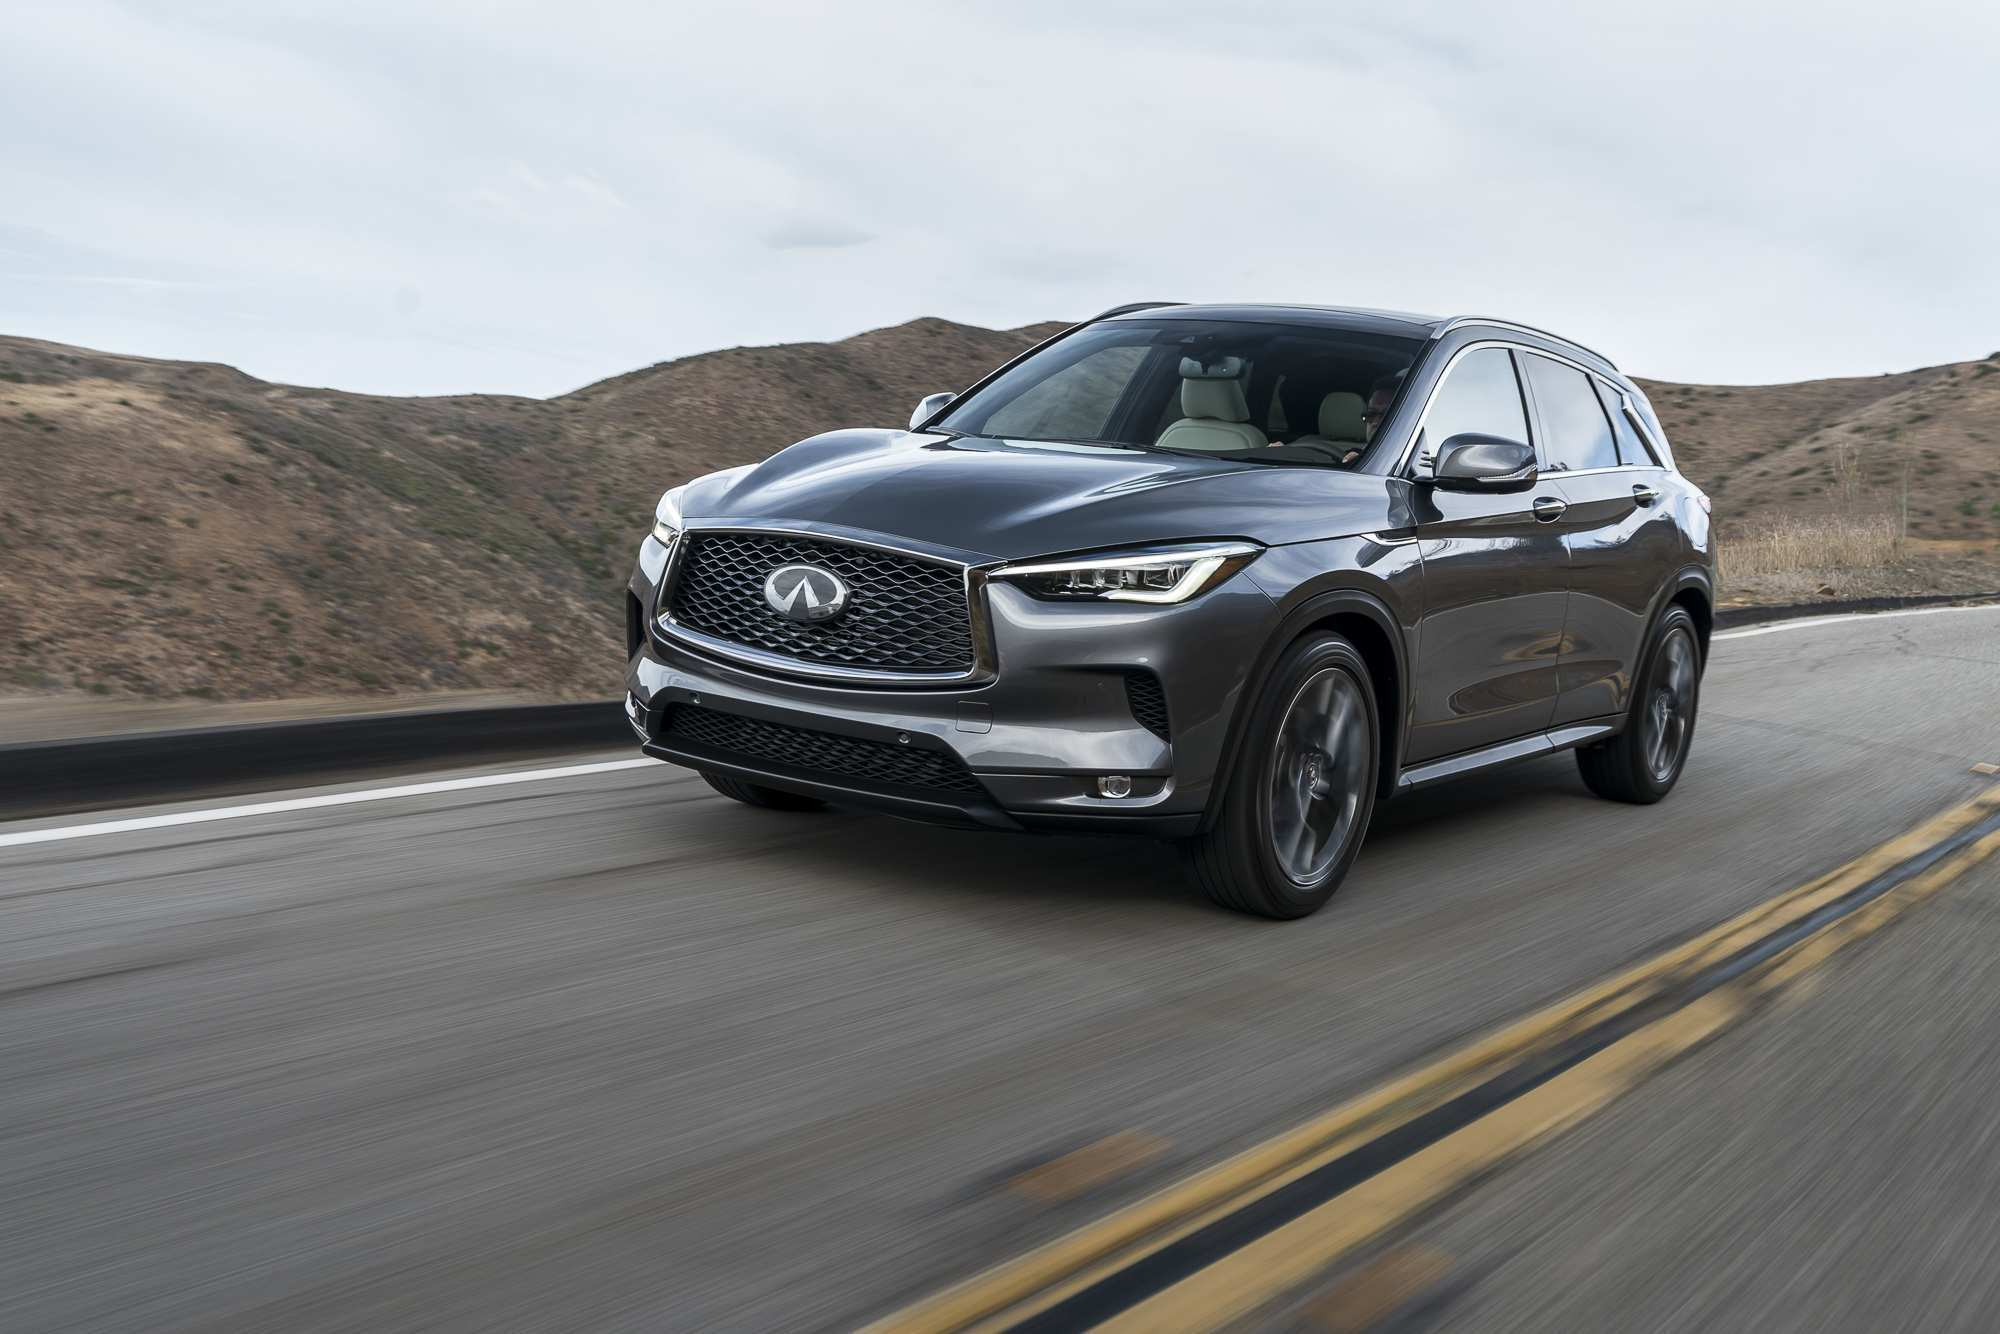 15 Gallery of 2019 Infiniti Qx50 Crossover Release with 2019 Infiniti Qx50 Crossover